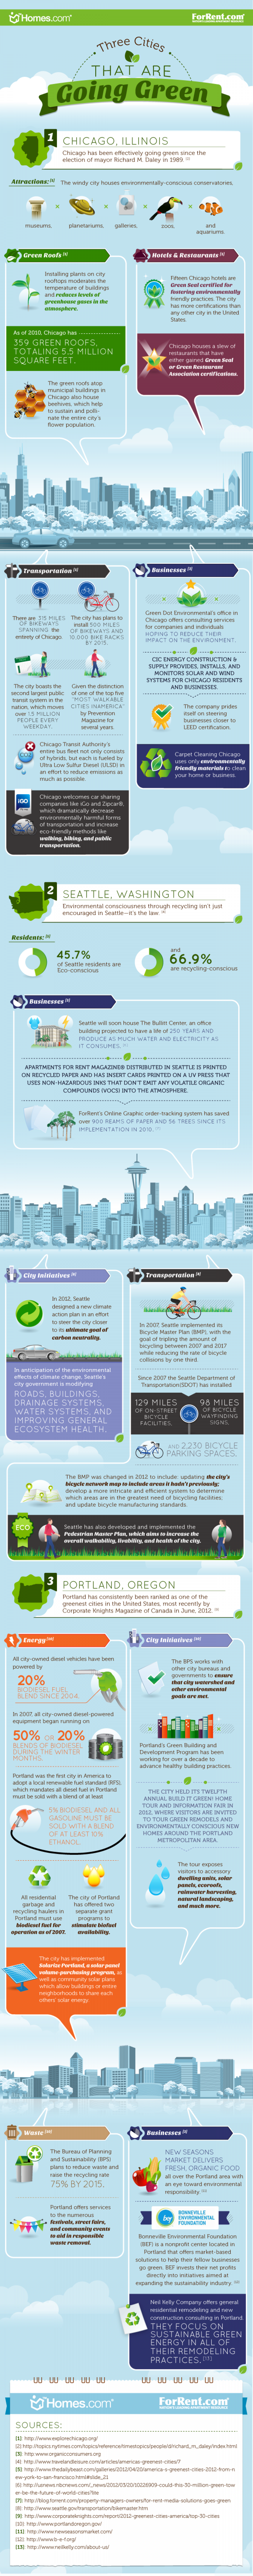 Three Cities that are going Green Infographic